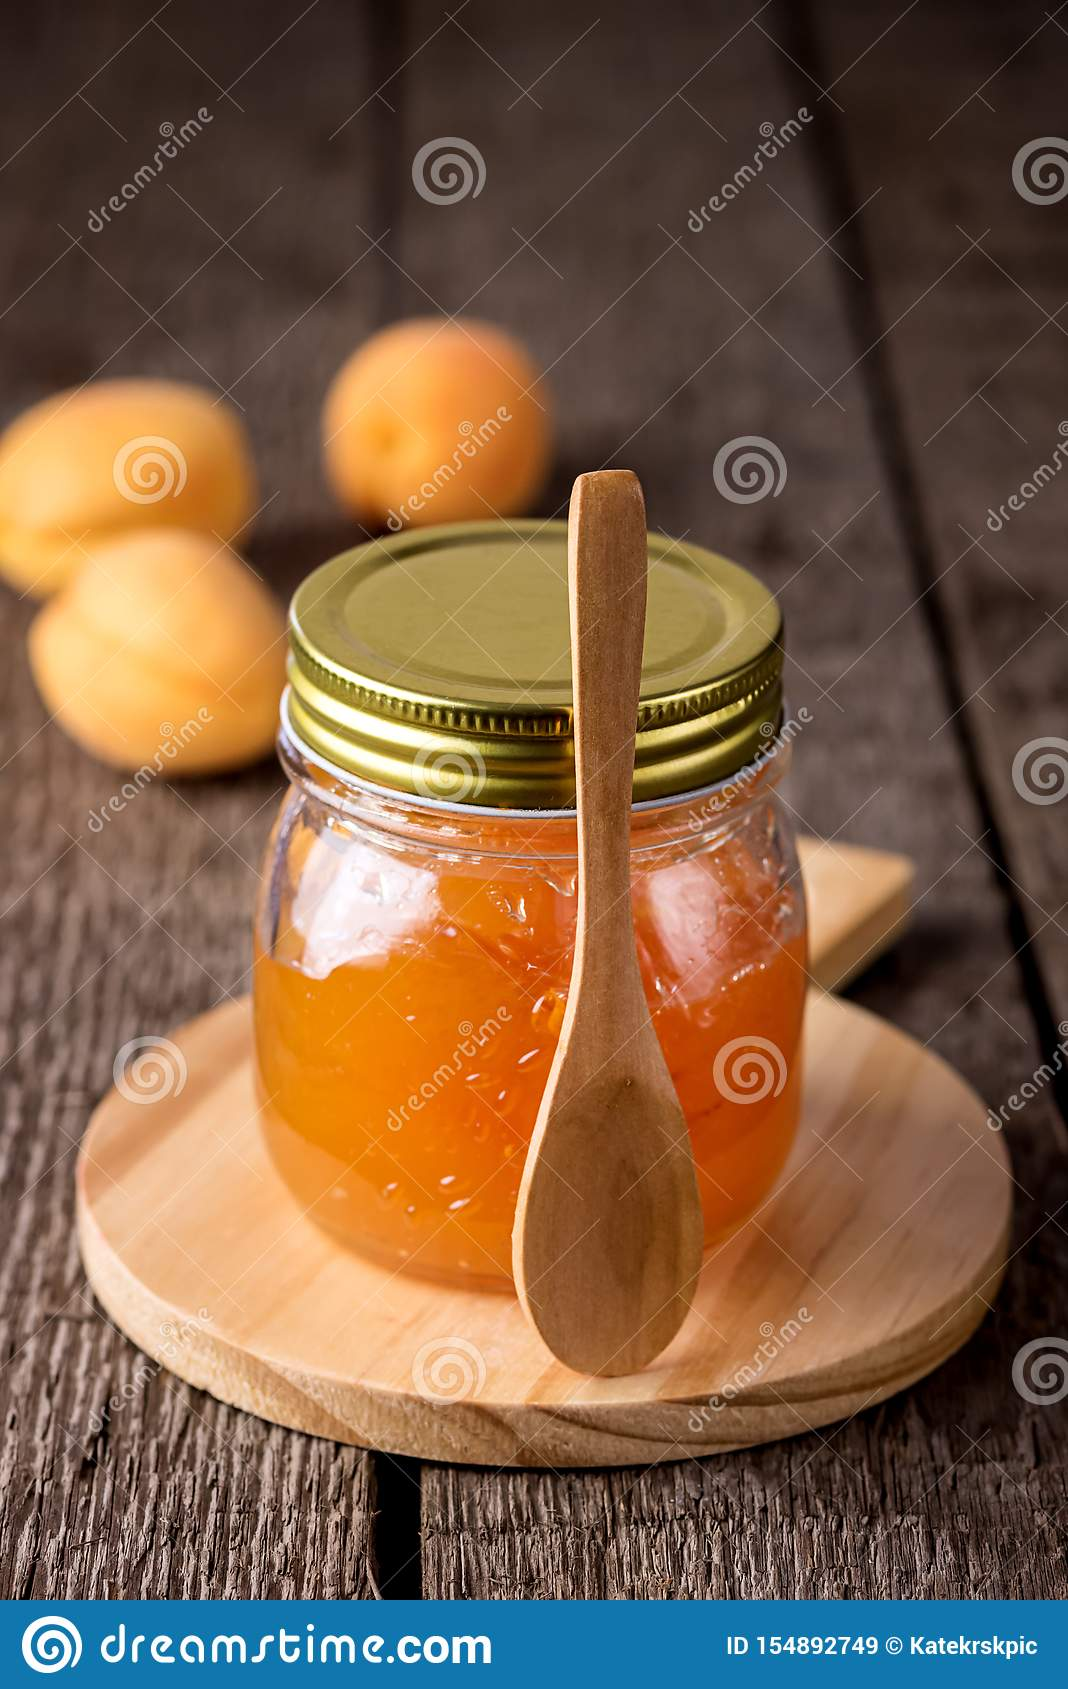 Glass Jar of Homemade Tasty Apricot Jam and Ripe Apricots on the Wooden Background Vertical